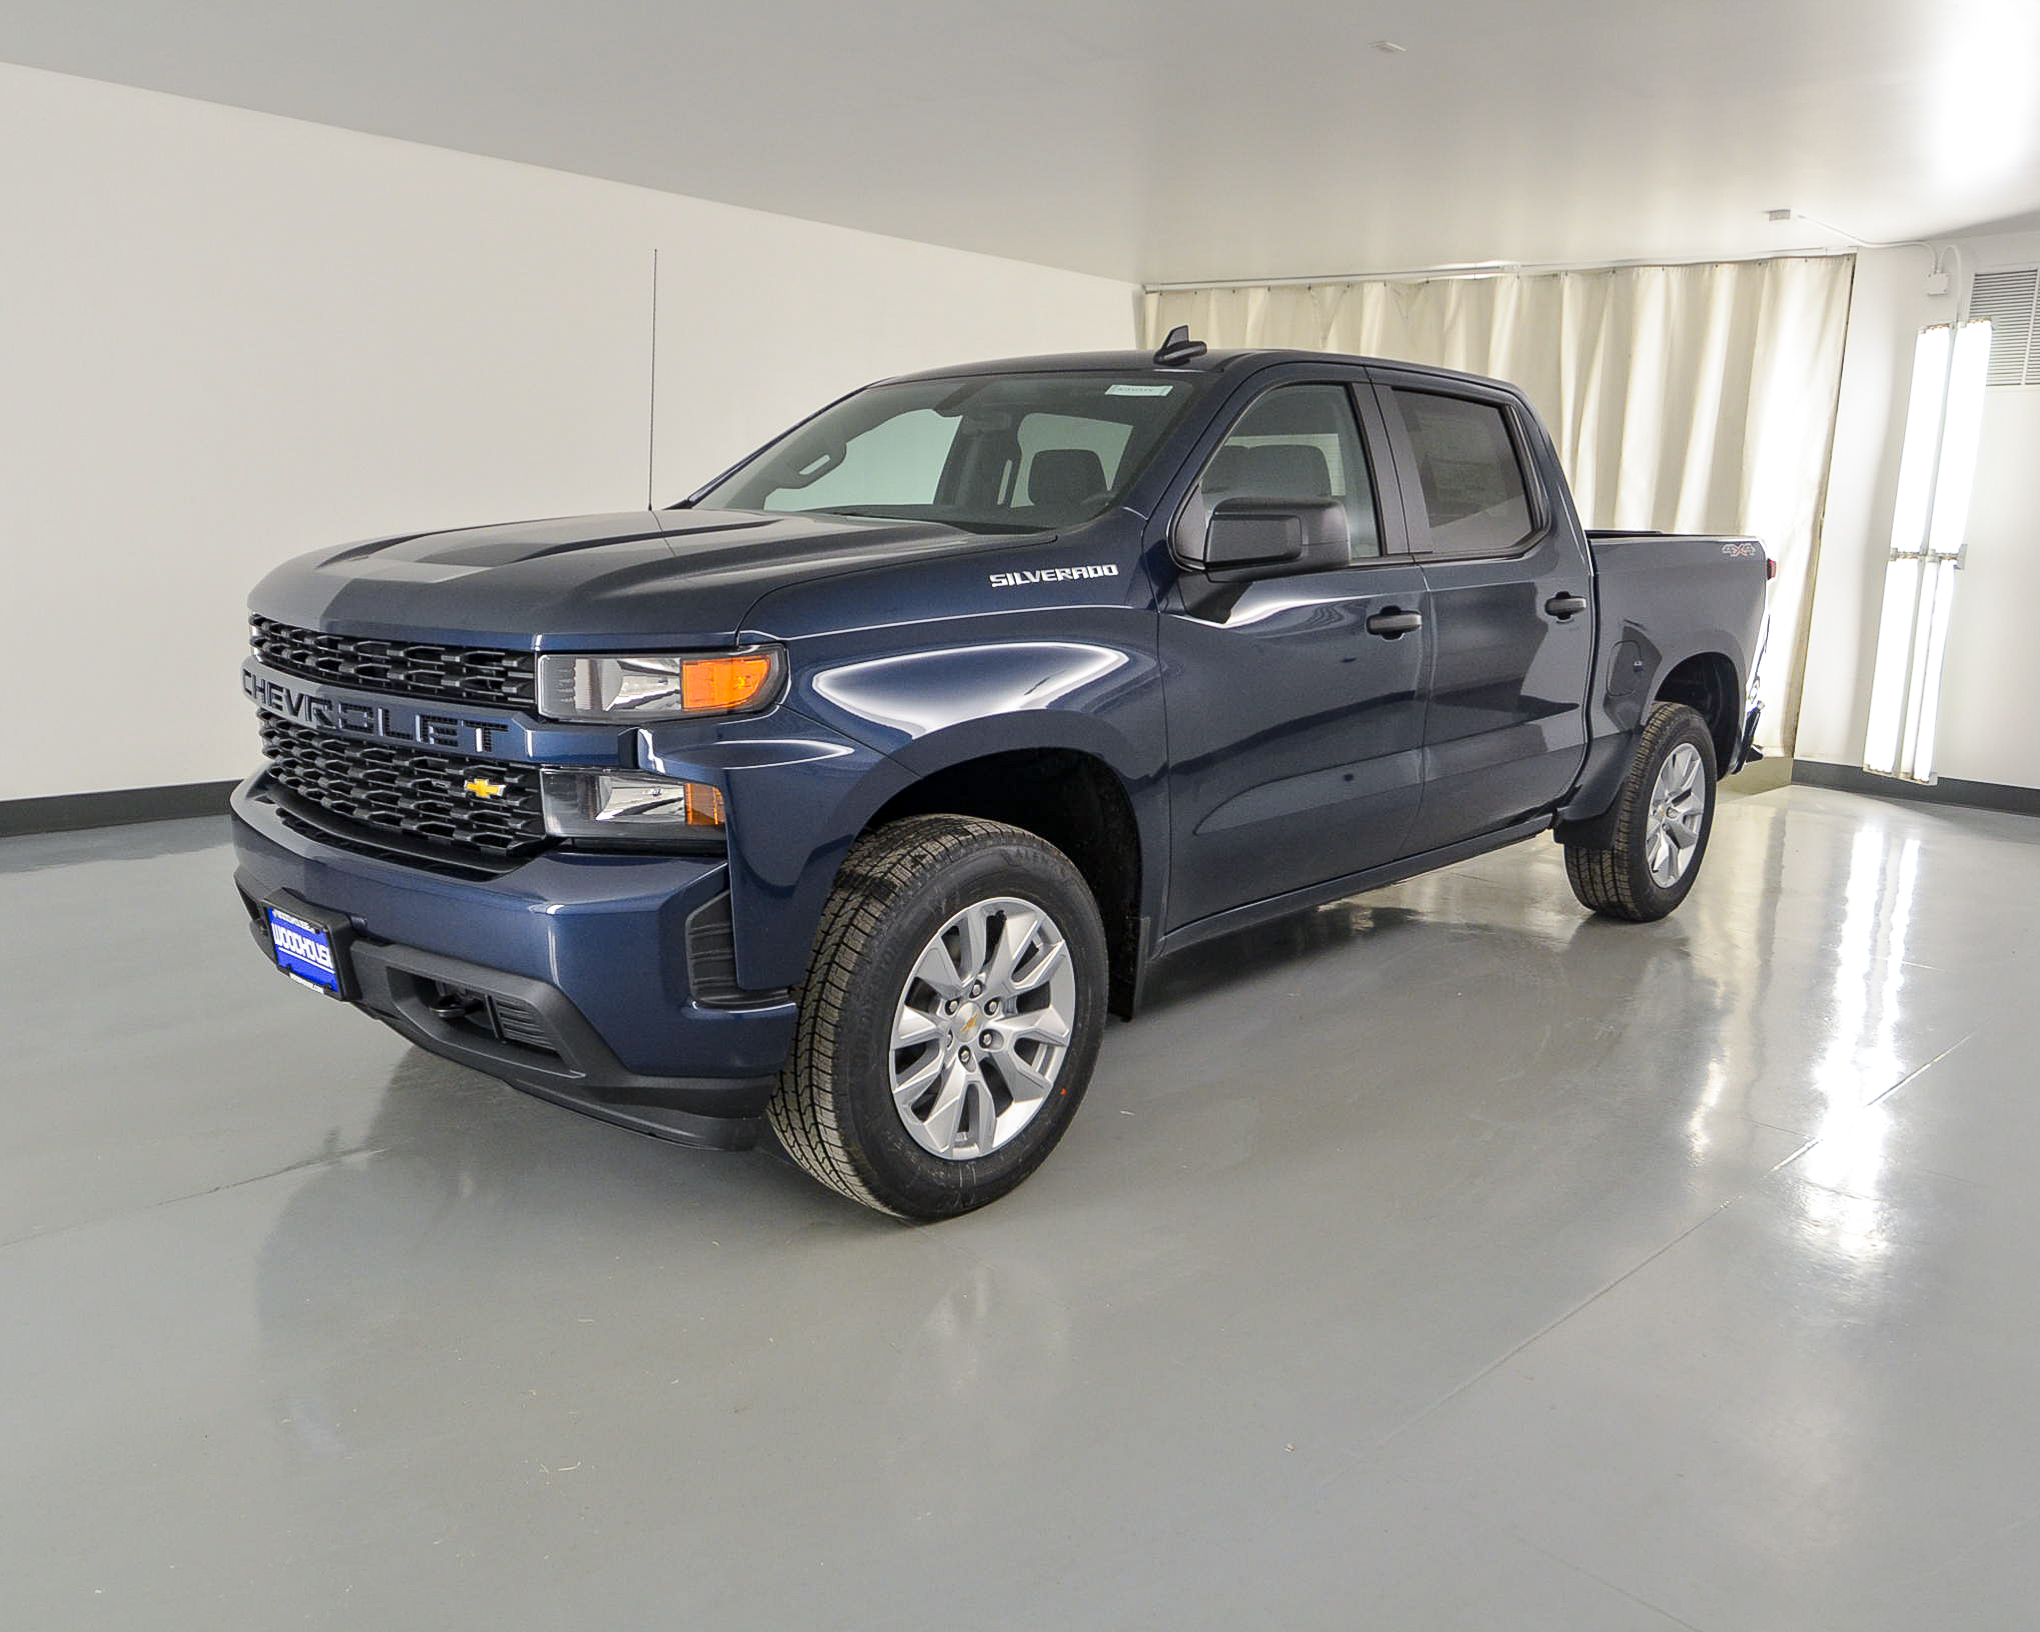 woodhouse new 2020 chevrolet silverado 1500 for sale chevy buick woodhouse